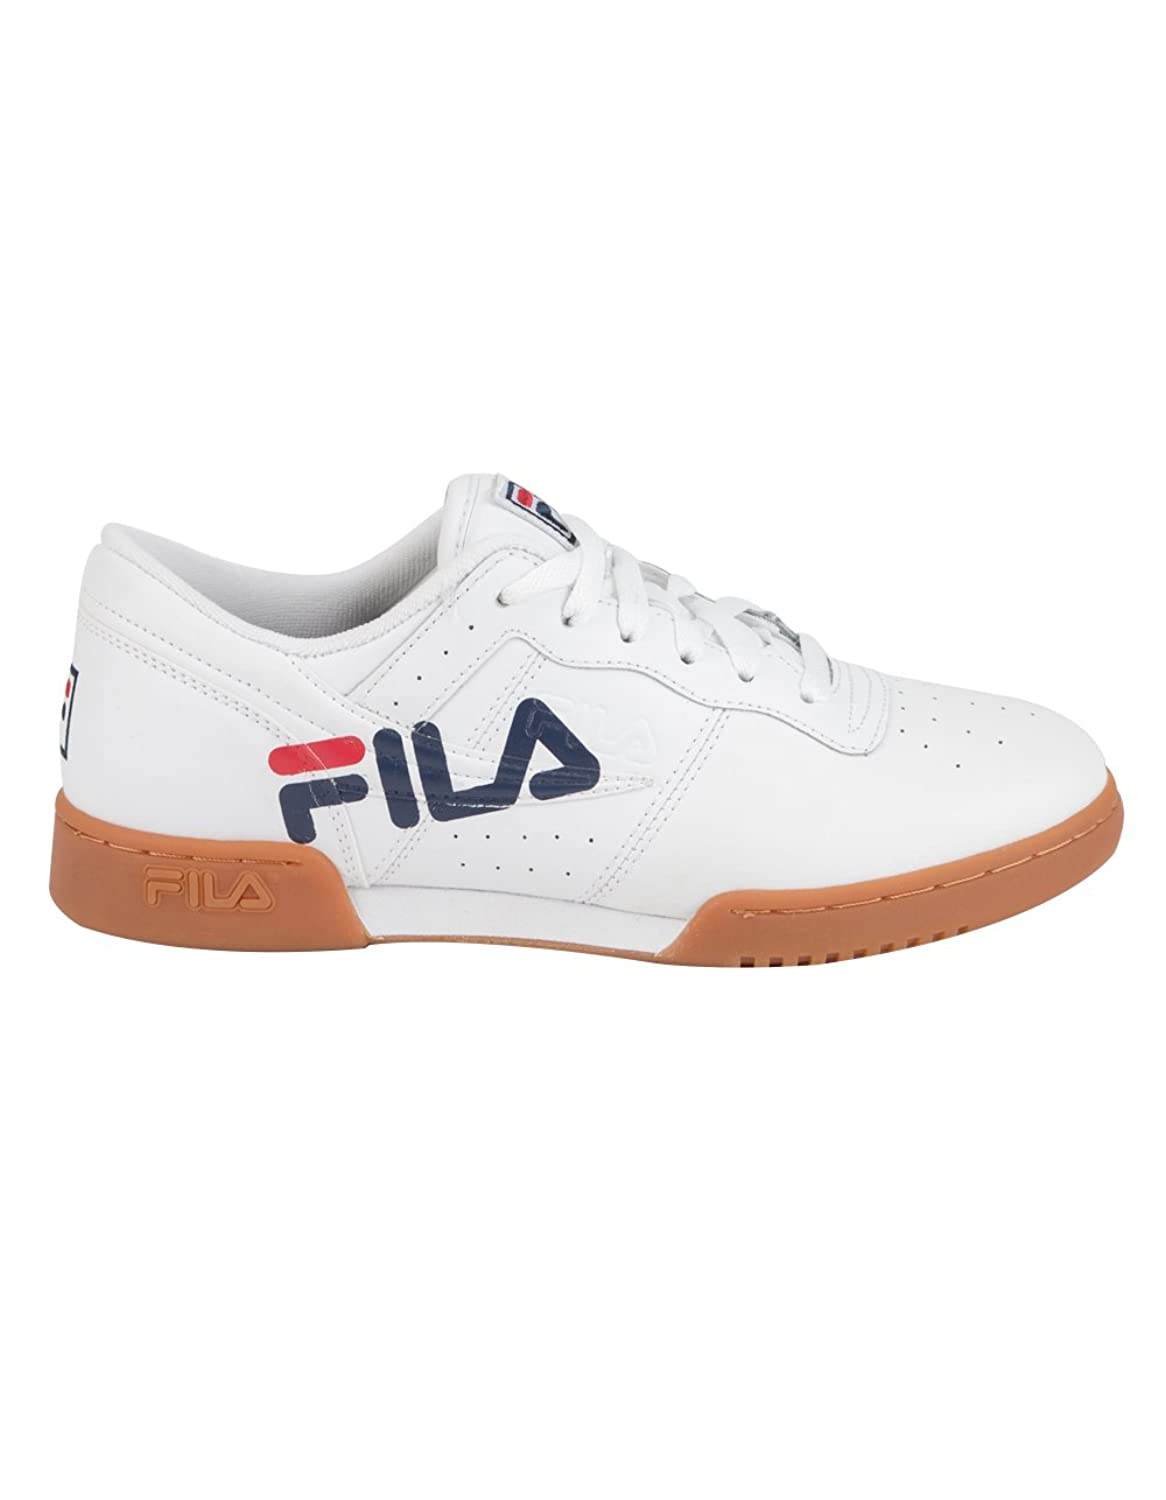 Fila Original Fitness Logo Sneakers (WH NV RD) Men's Athletic Shoes White/Fila Navy/Fila Red